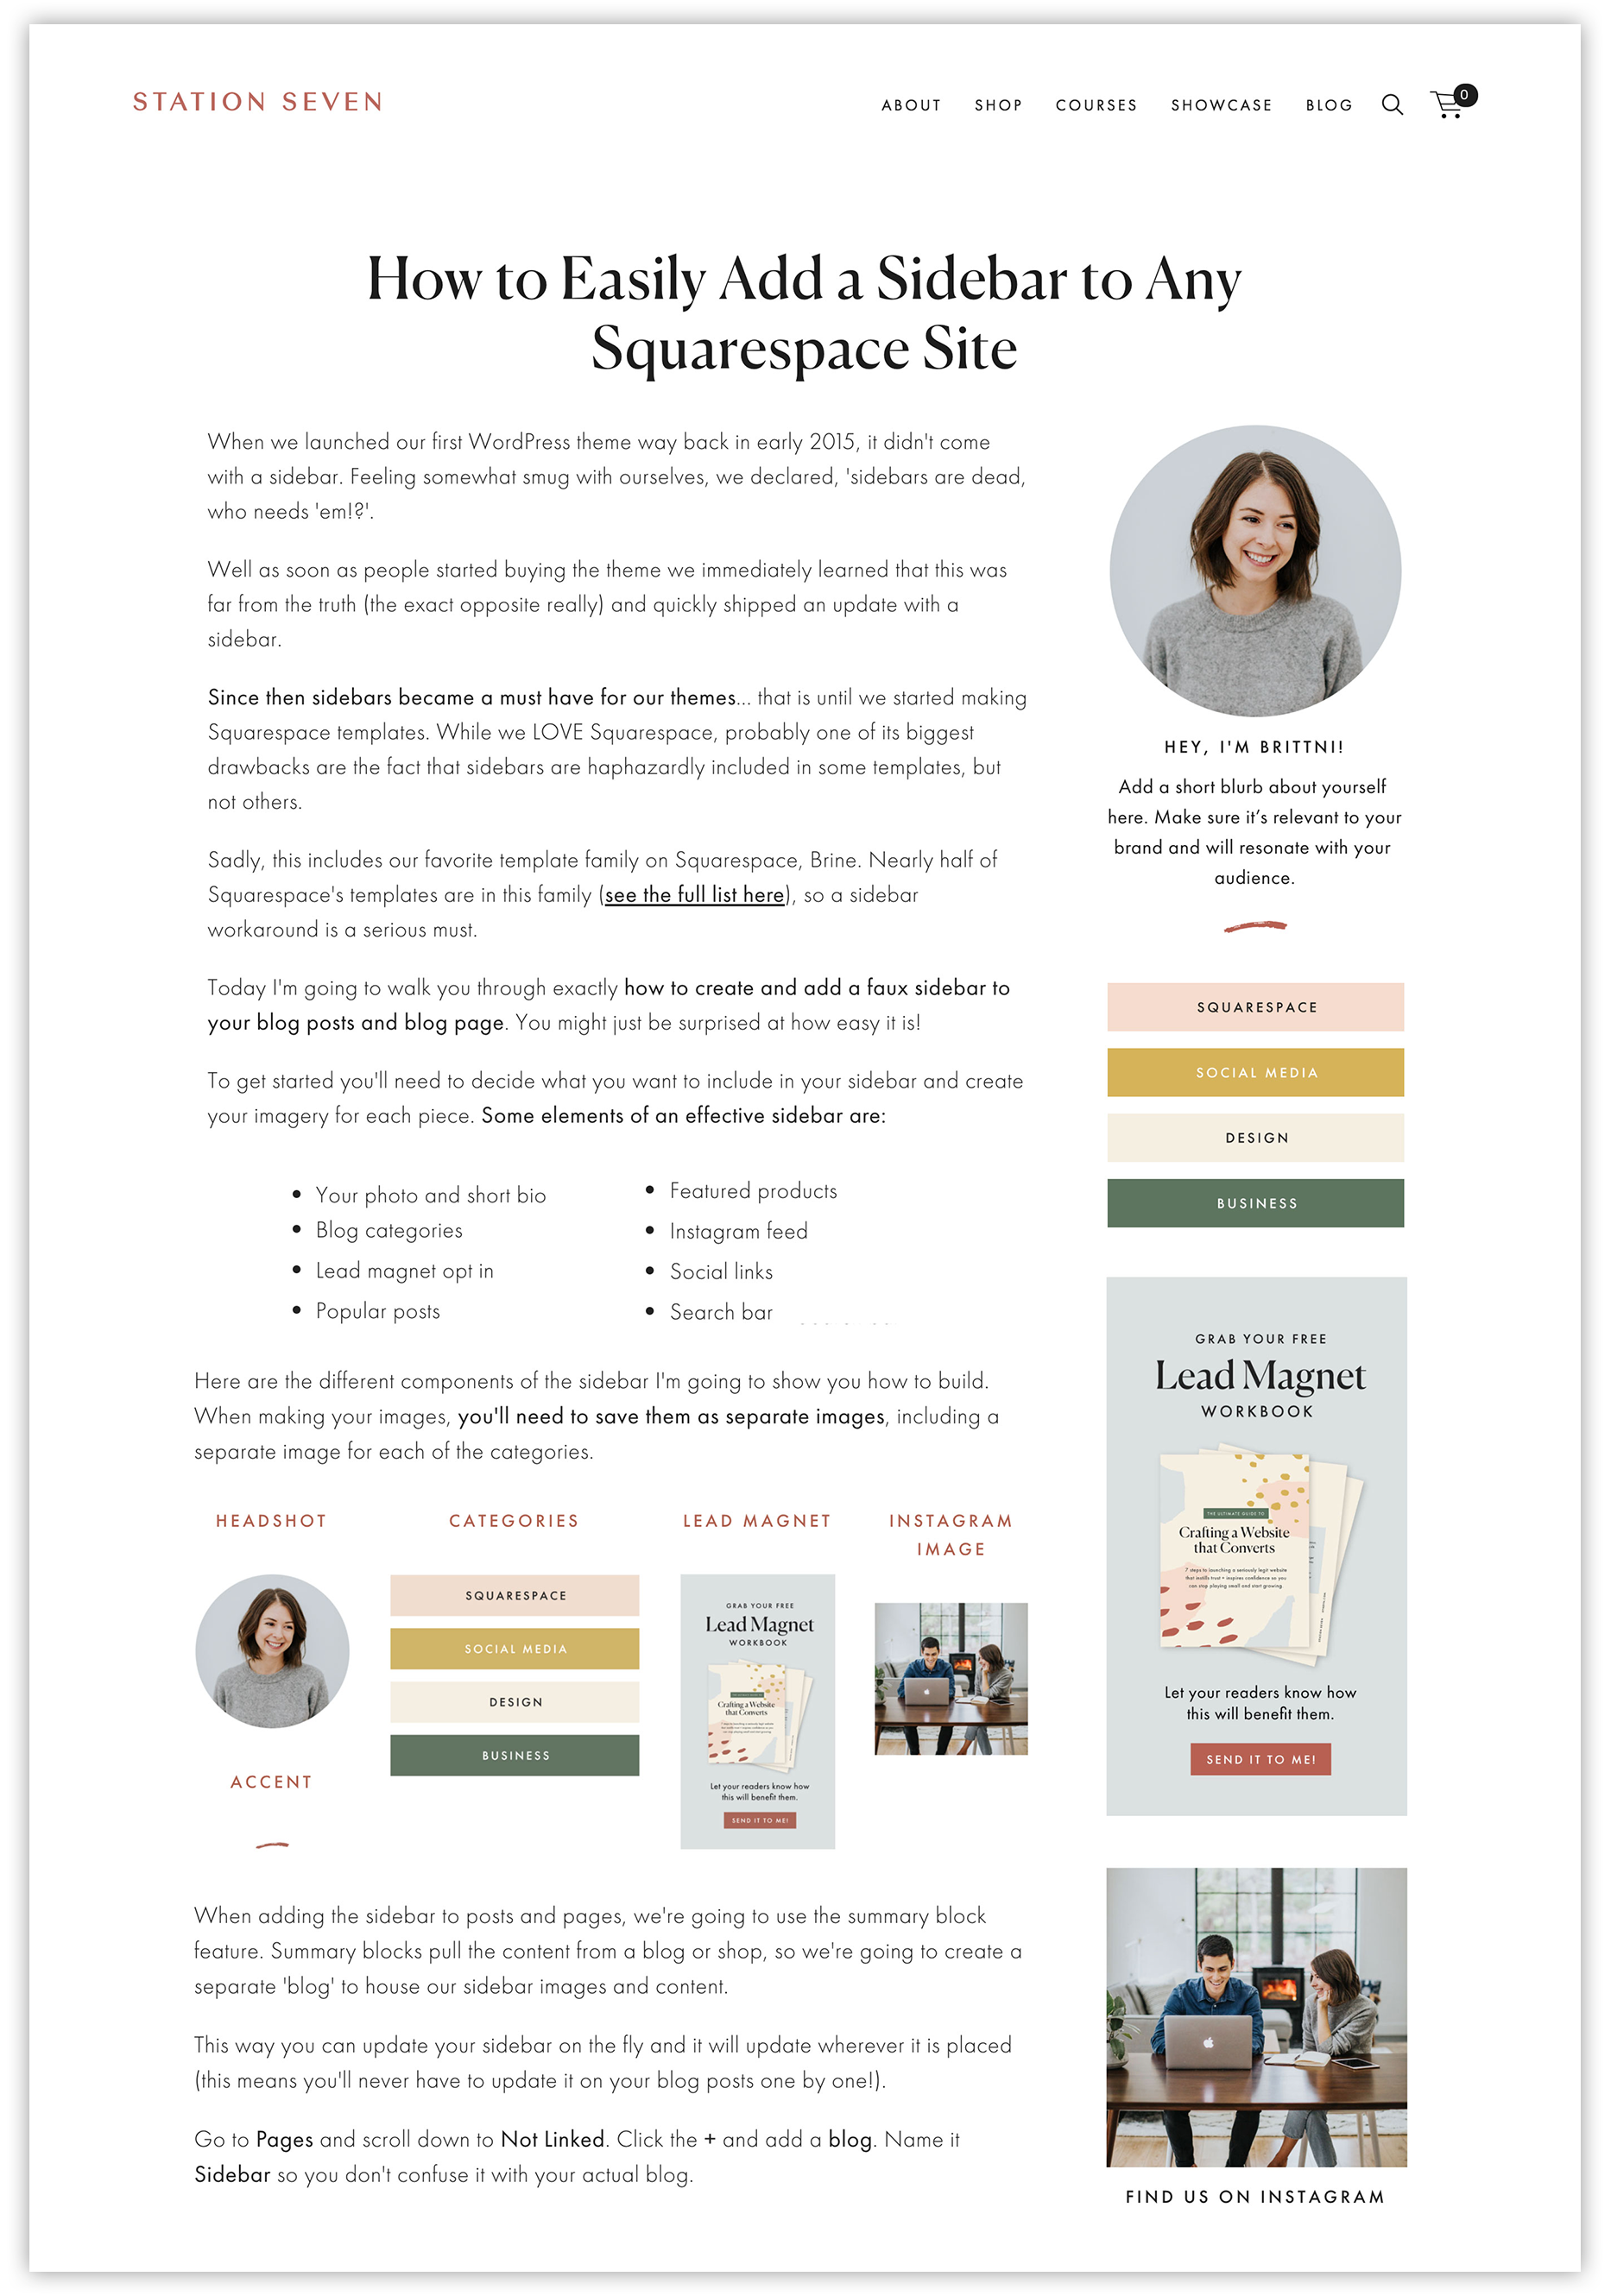 How to Easily Add a Sidebar to Any Squarespace Site